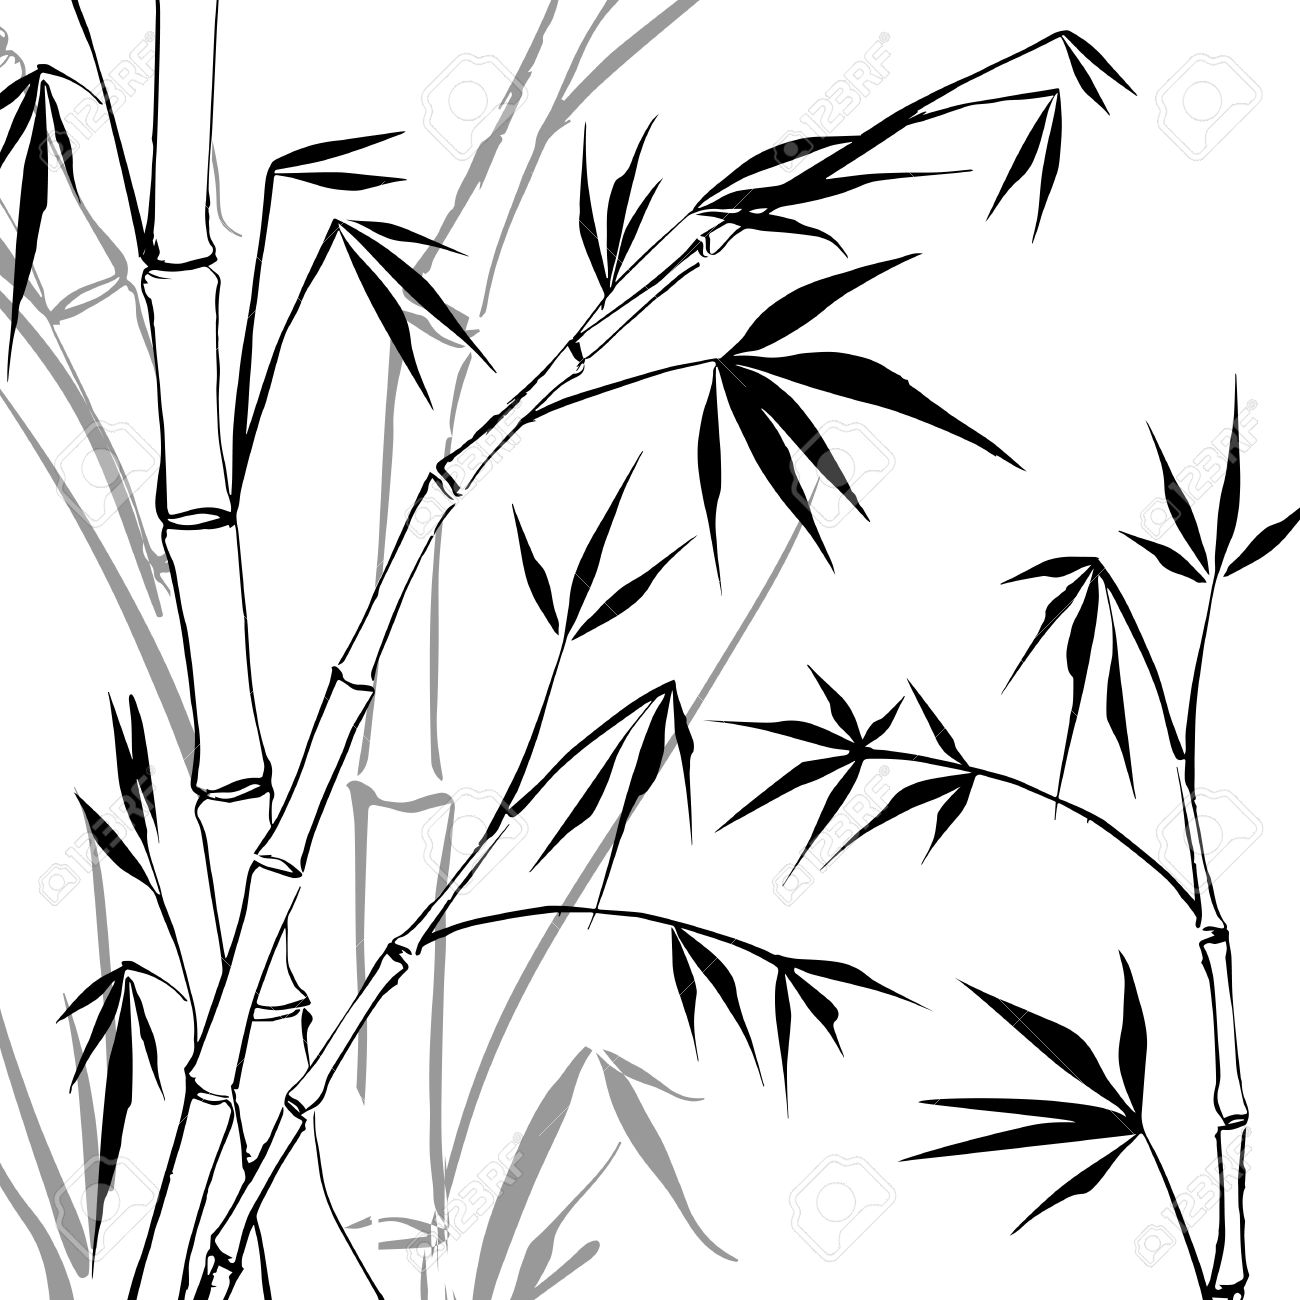 Bamboo clipart black and white. Station